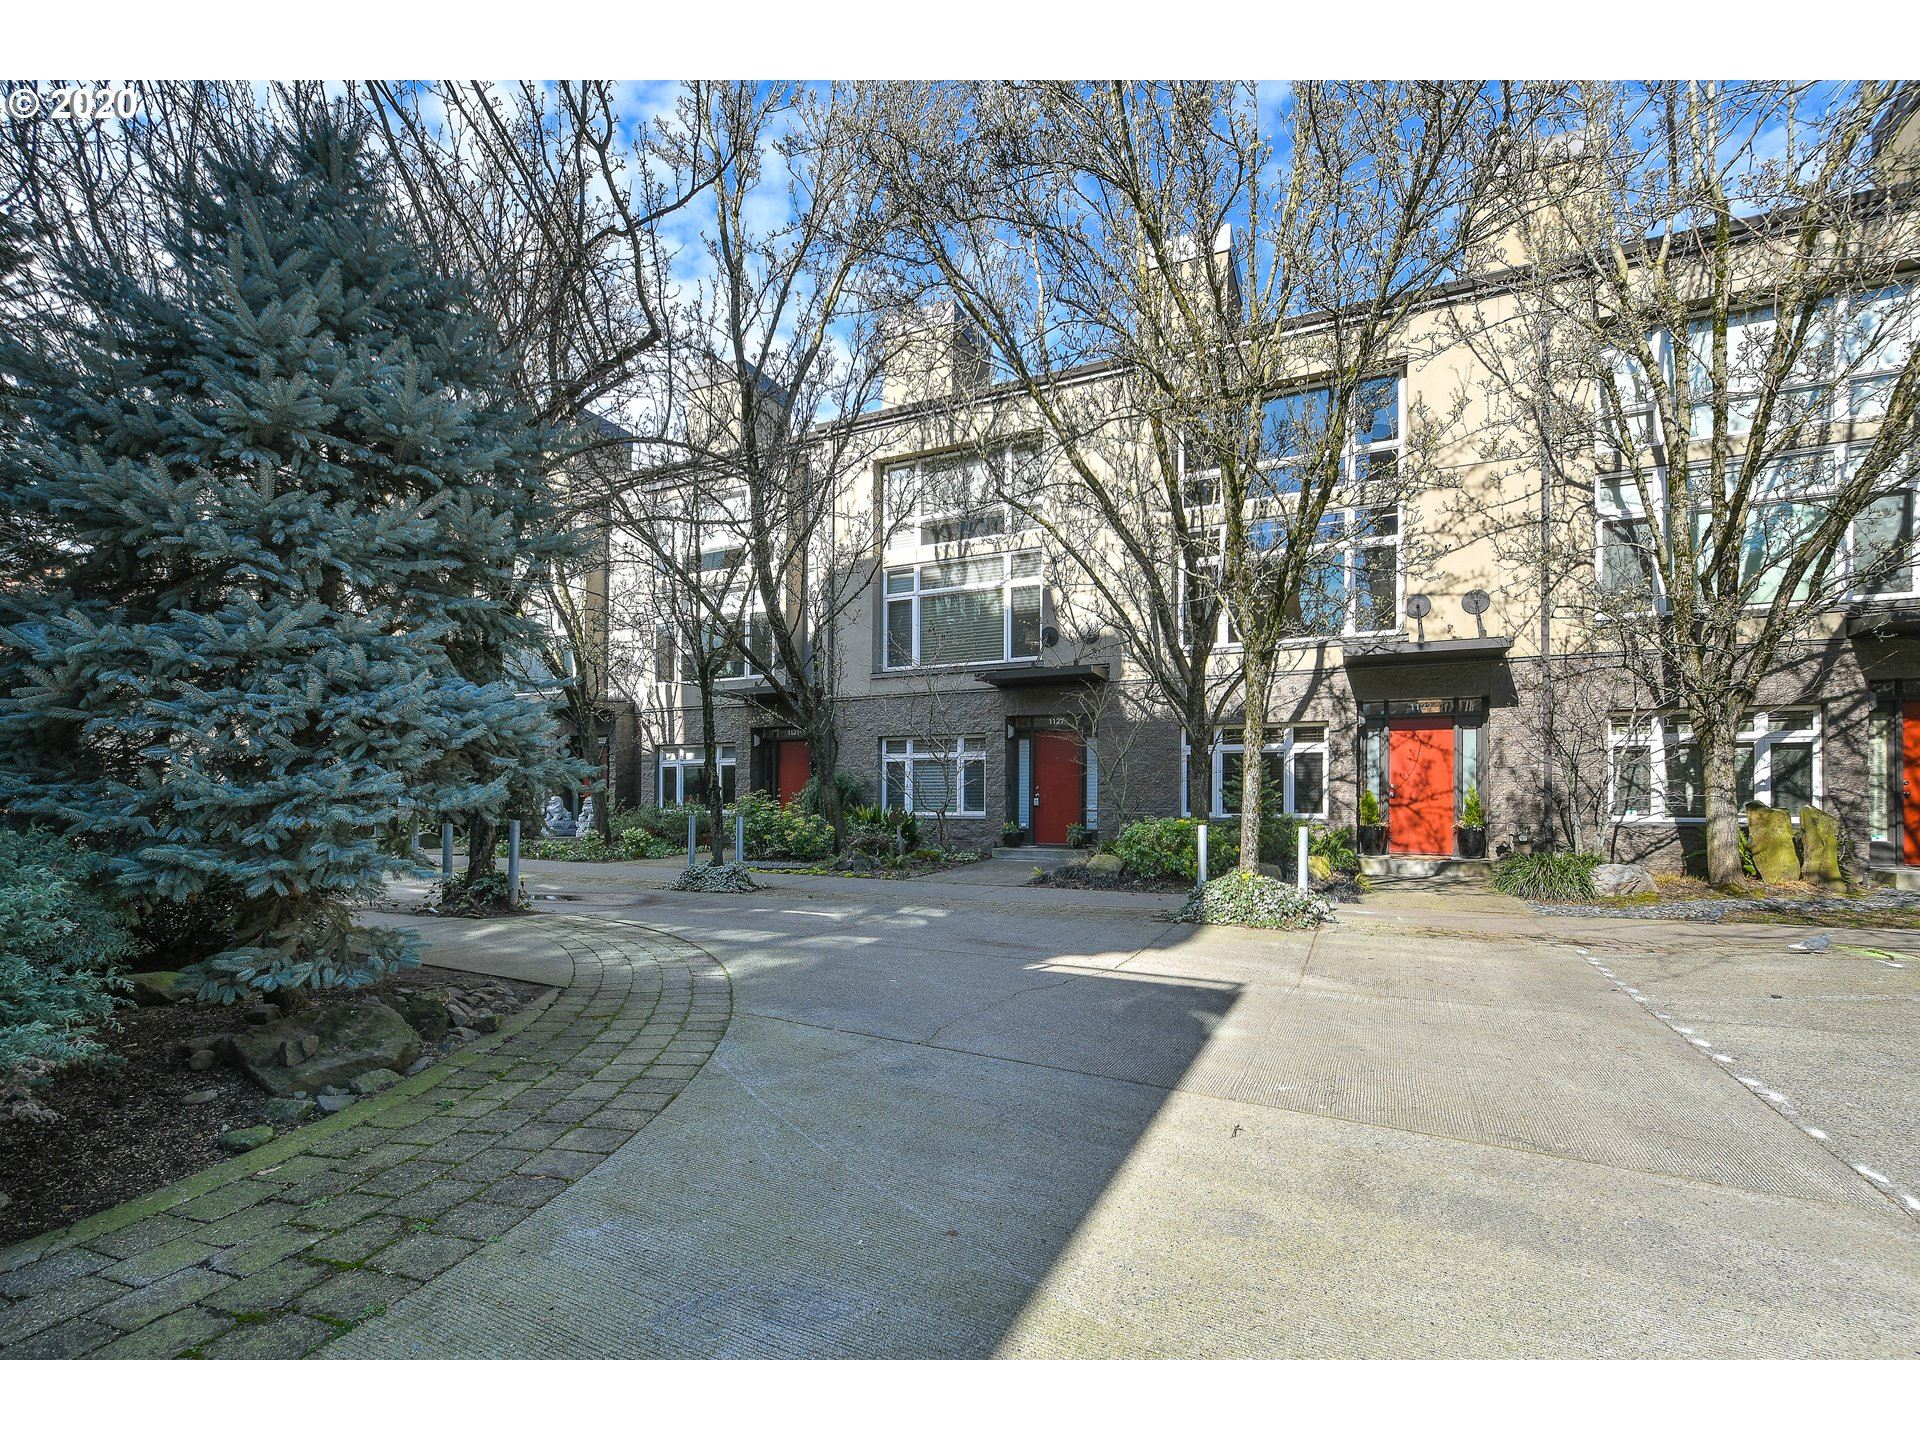 1127 NW IRVING ST, Portland, OR 97209 - MLS#: 20208995